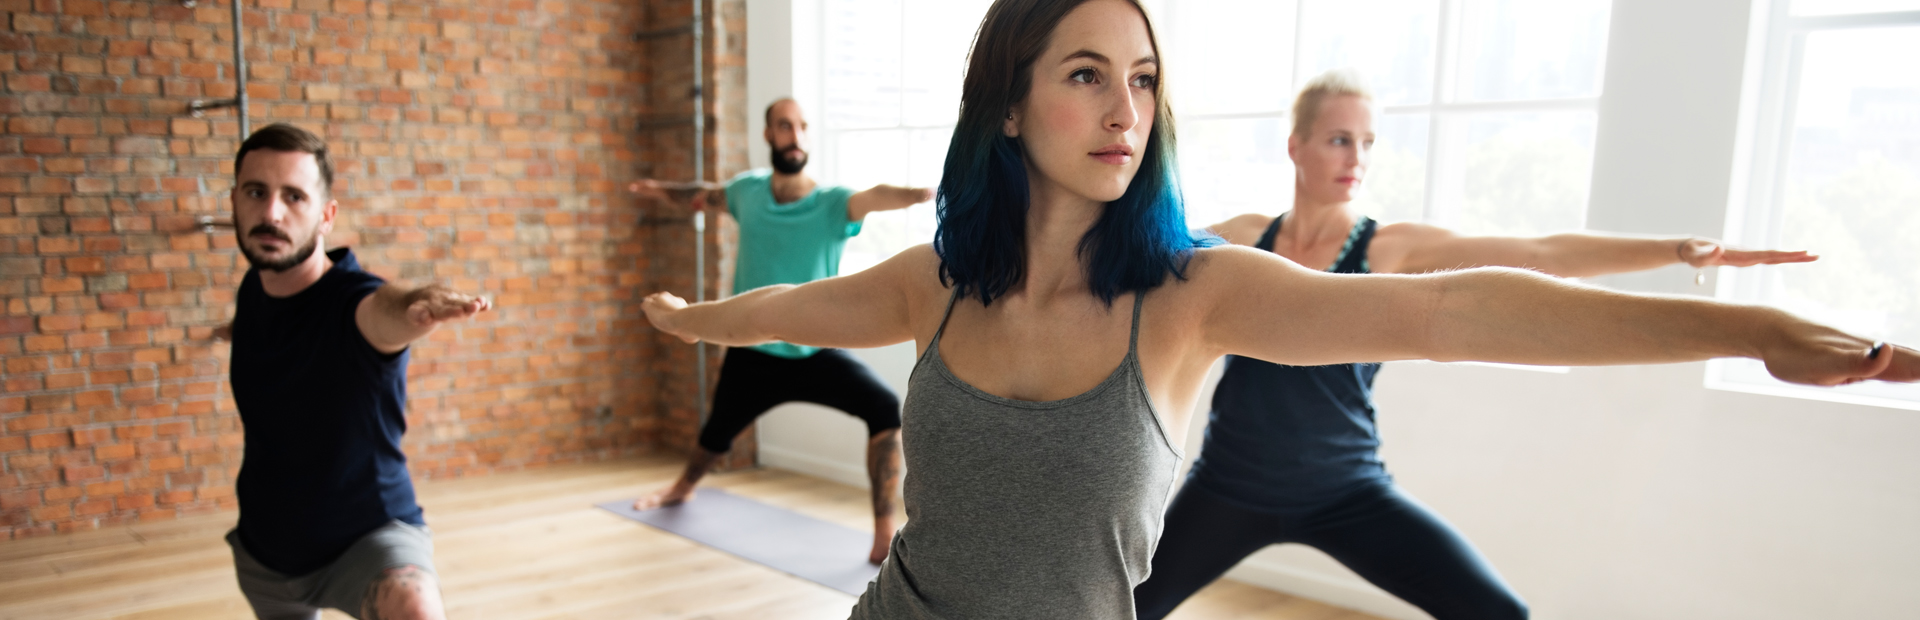 Join the Virtual group exercise revolution - transform your under-used studio